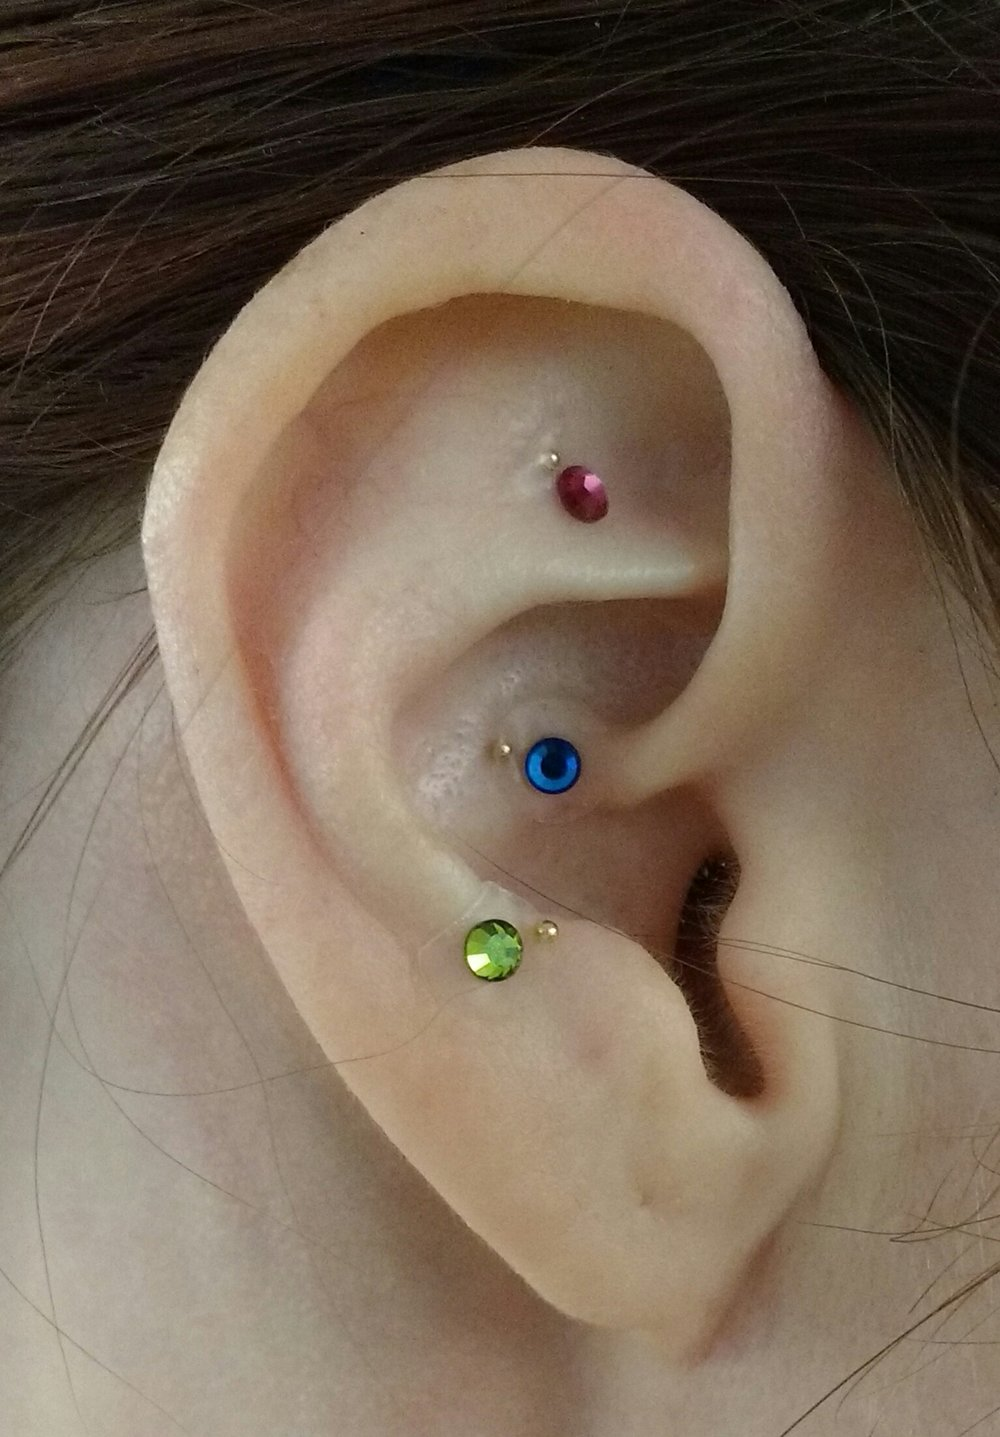 - Most of my patients go home with ear seeds so they can give themselves acupressure on key points that help relieve stress, anxiety, cravings, and pain. I offer a barely noticeable type or these beauties enhanced with Swarovski crystals for extra-sparkly self-care.